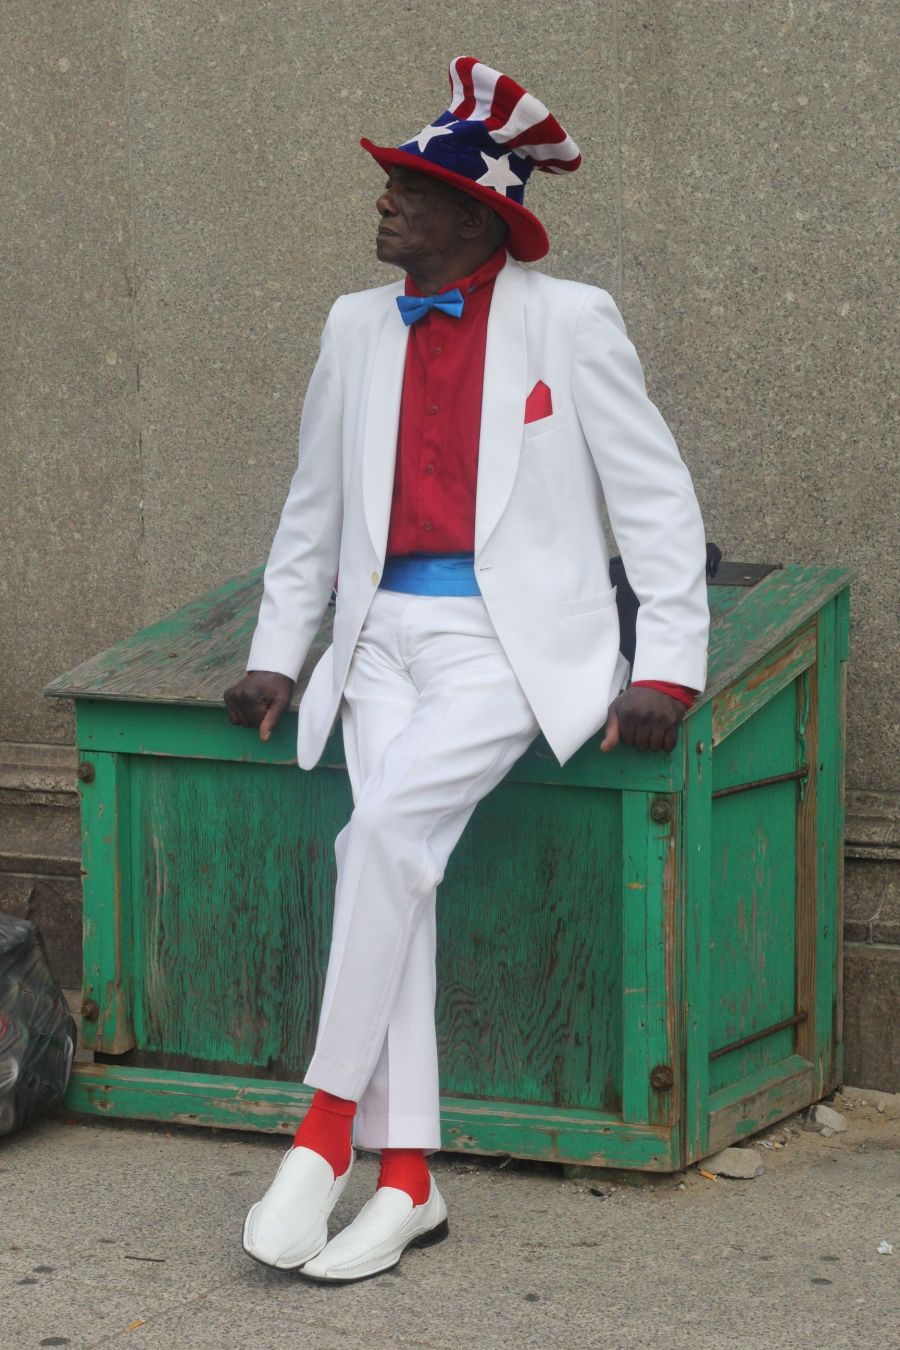 boston park street man in red white and blue suit july 4th